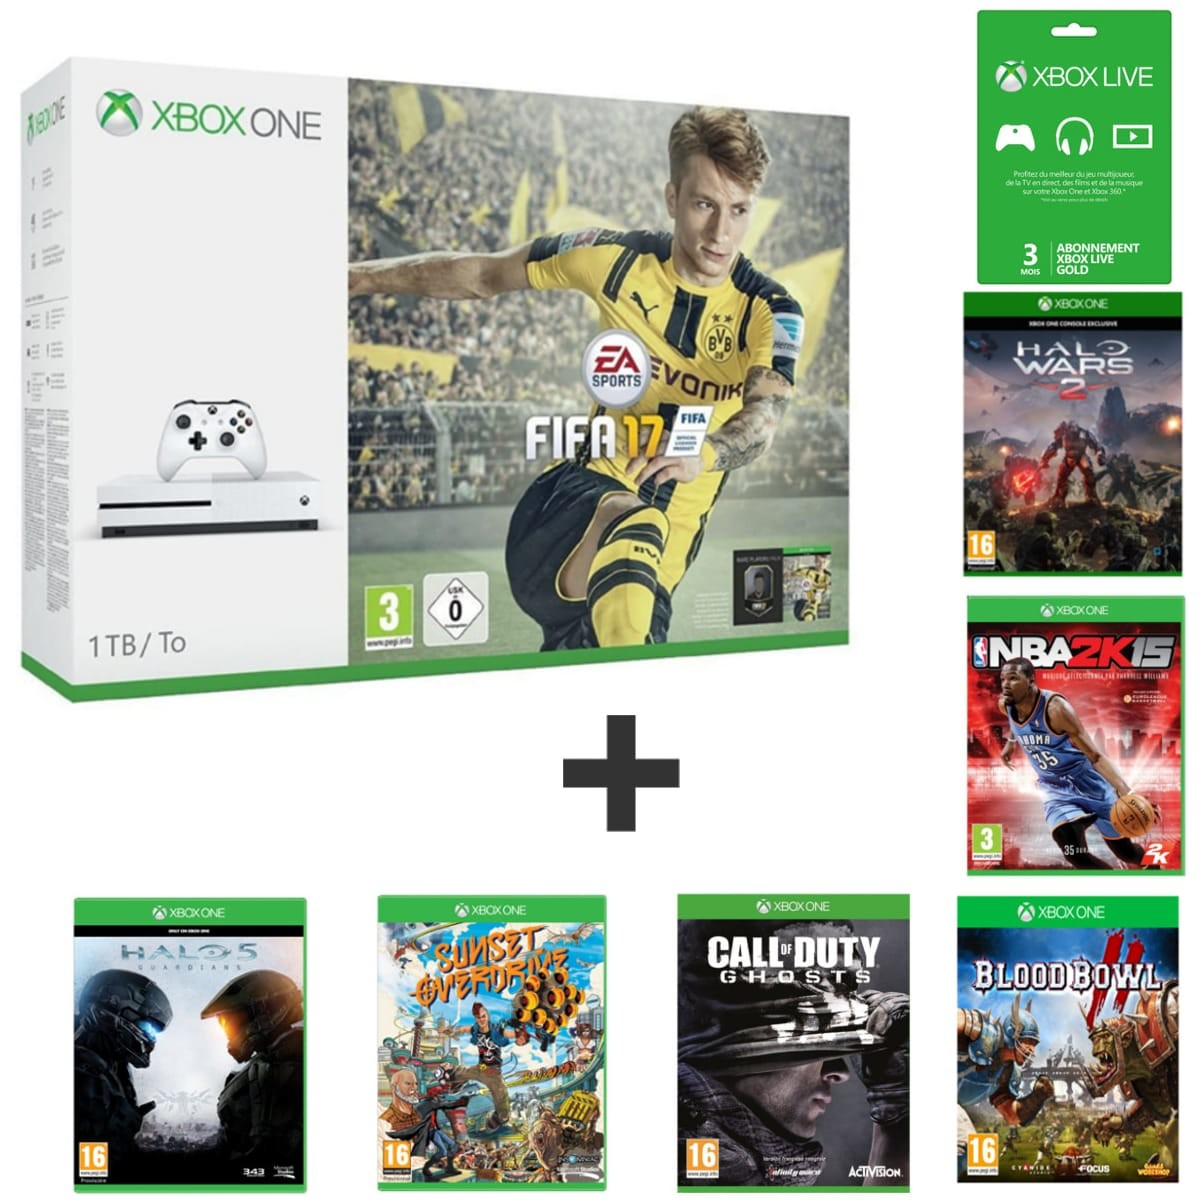 console xbox one s 1 to fifa 17 halo wars 2 halo 5 sunset overdrive blood bowl 2 nba. Black Bedroom Furniture Sets. Home Design Ideas